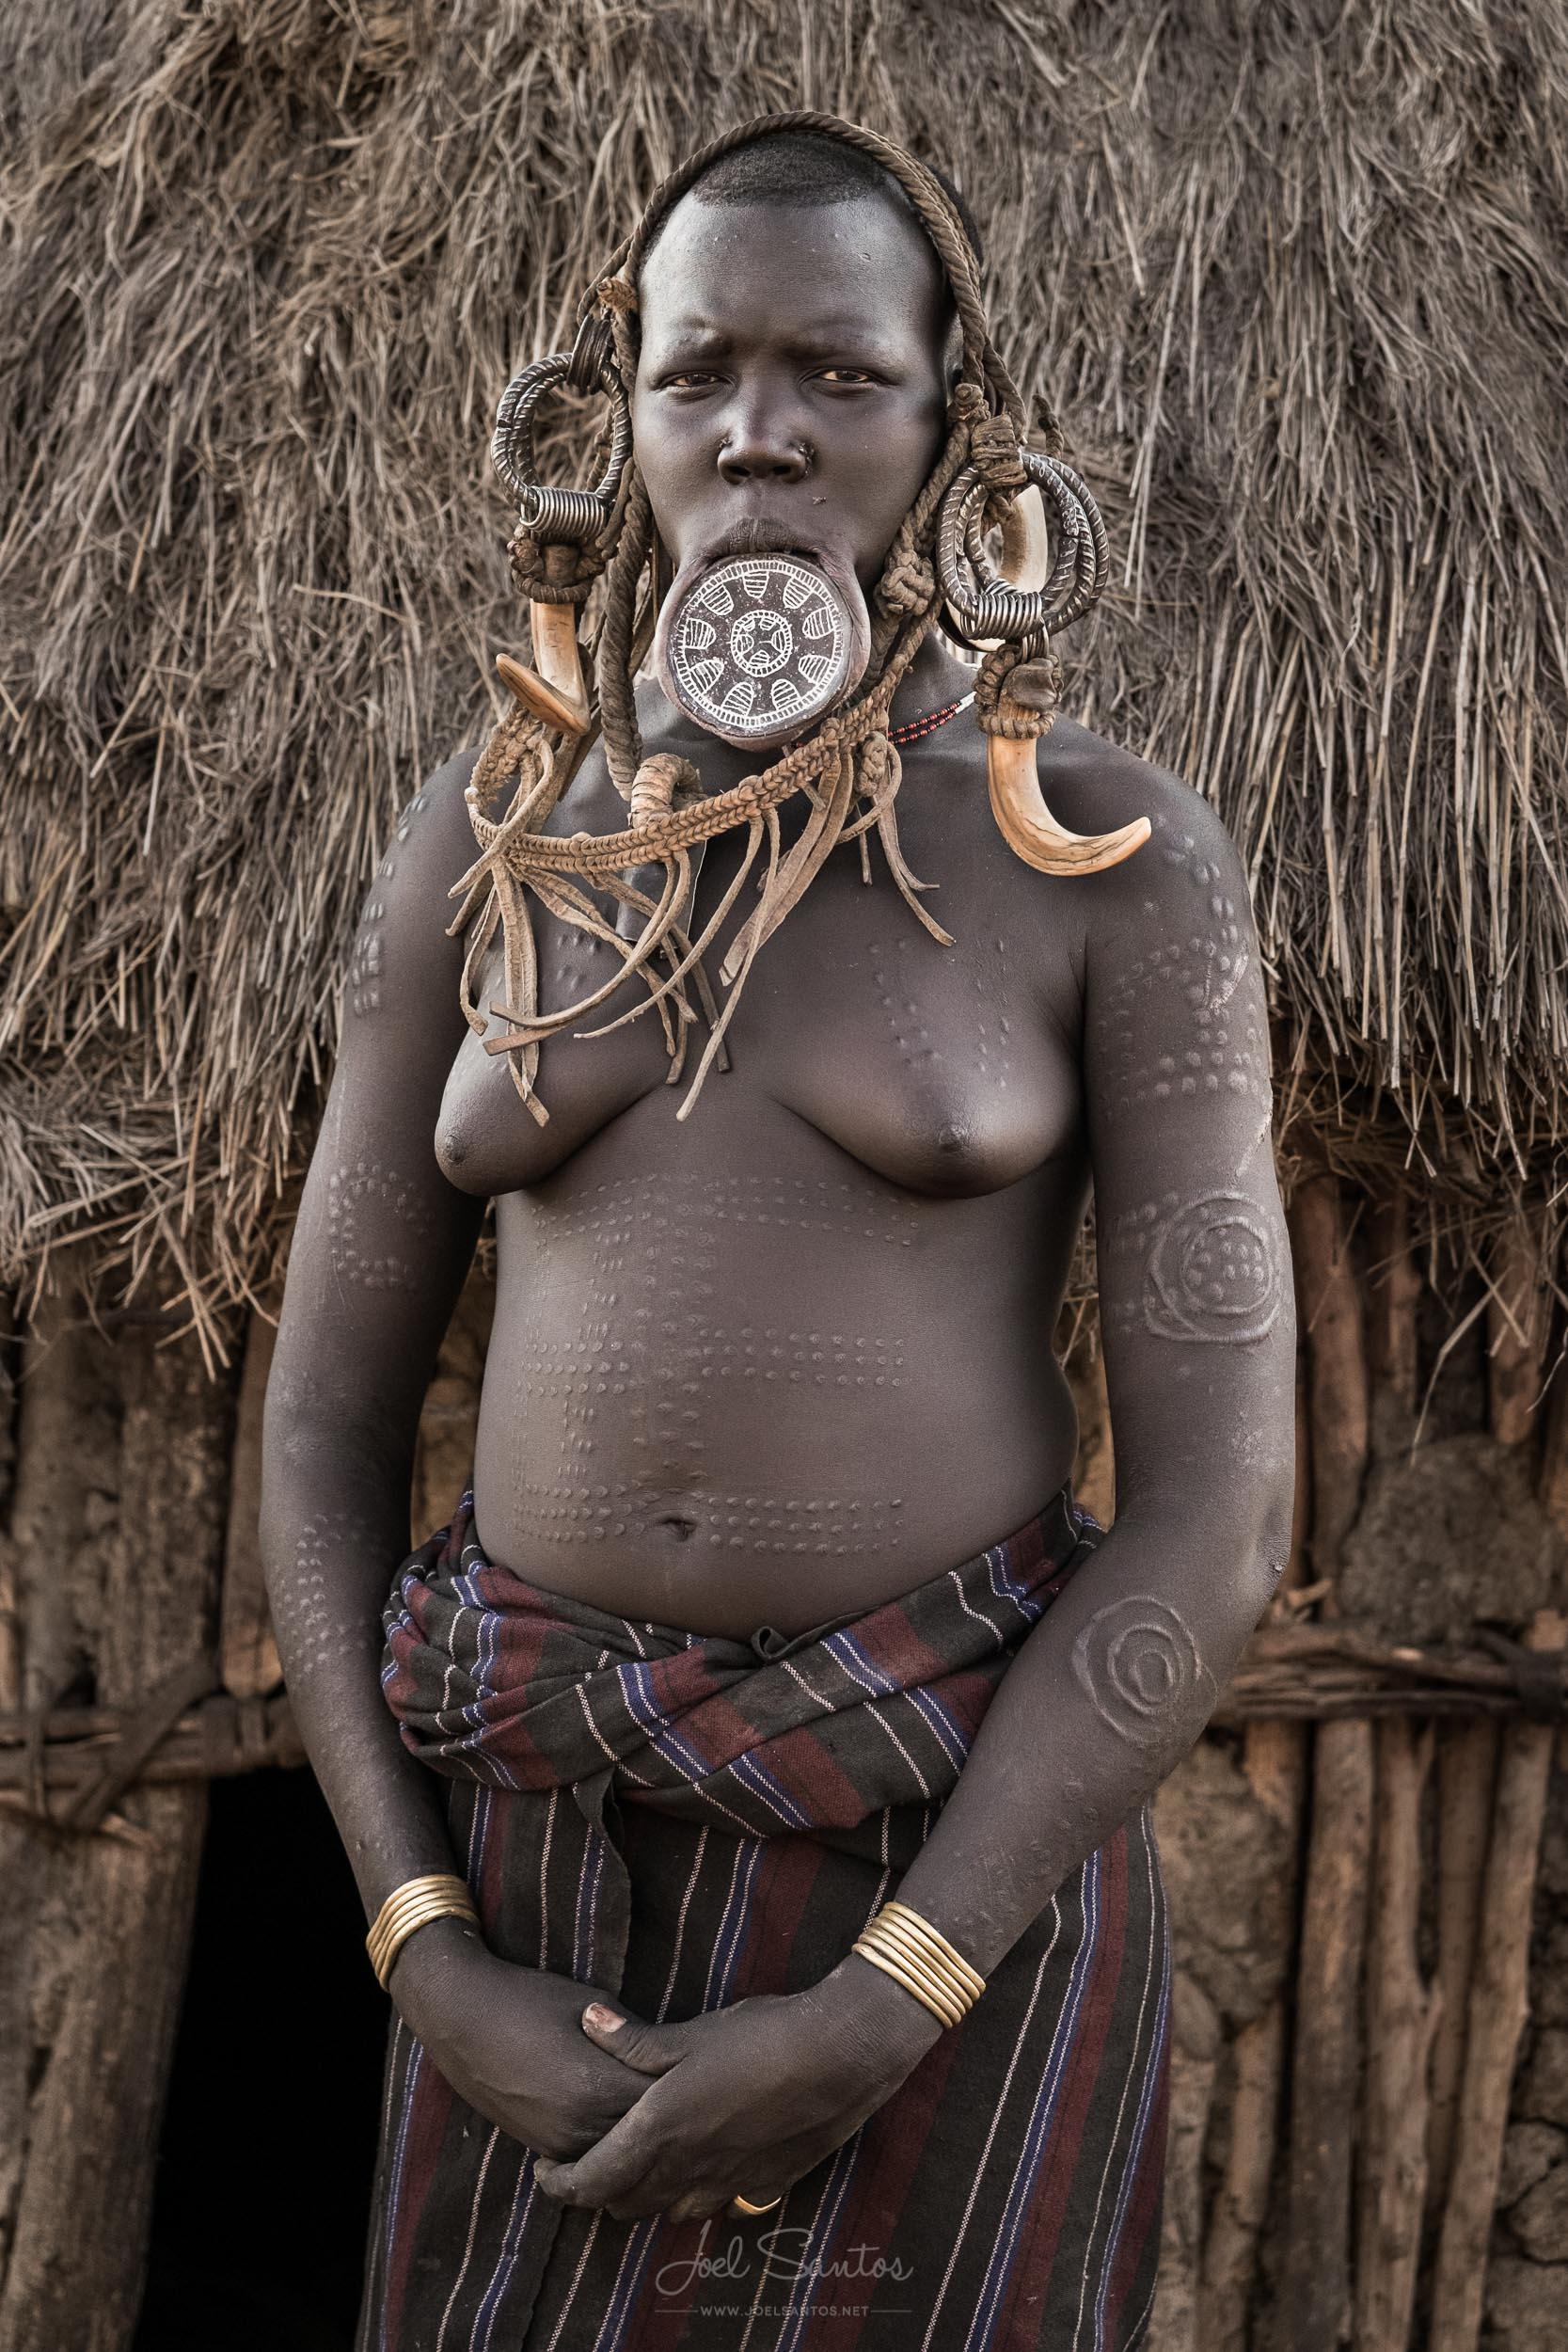 Mursi Tribe Woman with Ear Plates and Body Scarification, Omo Valley, Ethiopia